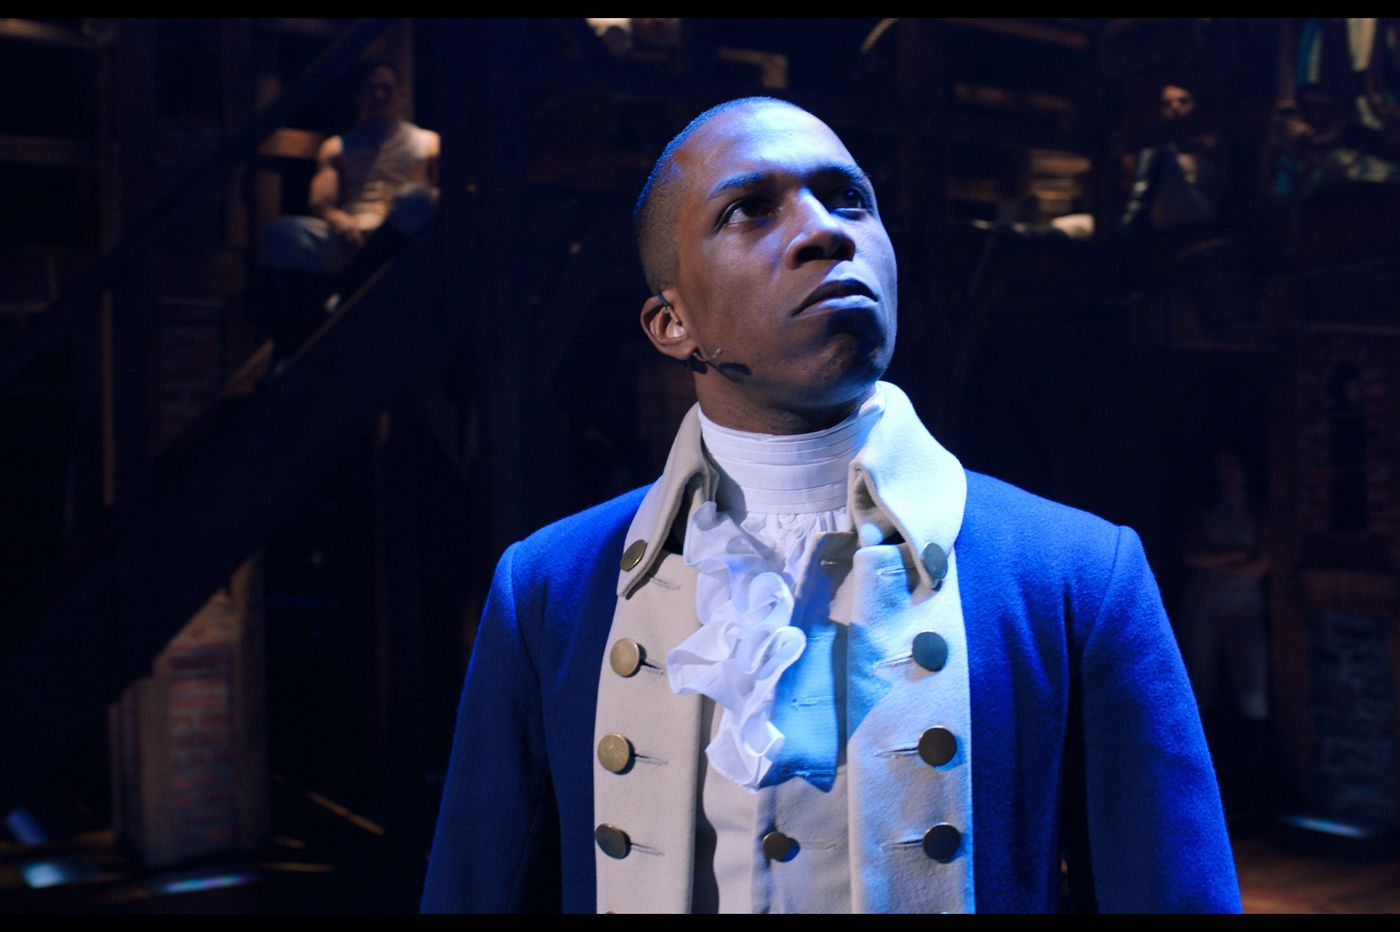 'Hamilton' comes to Disney+ this week, and Philly's Leslie Odom Jr. says he has only one regret